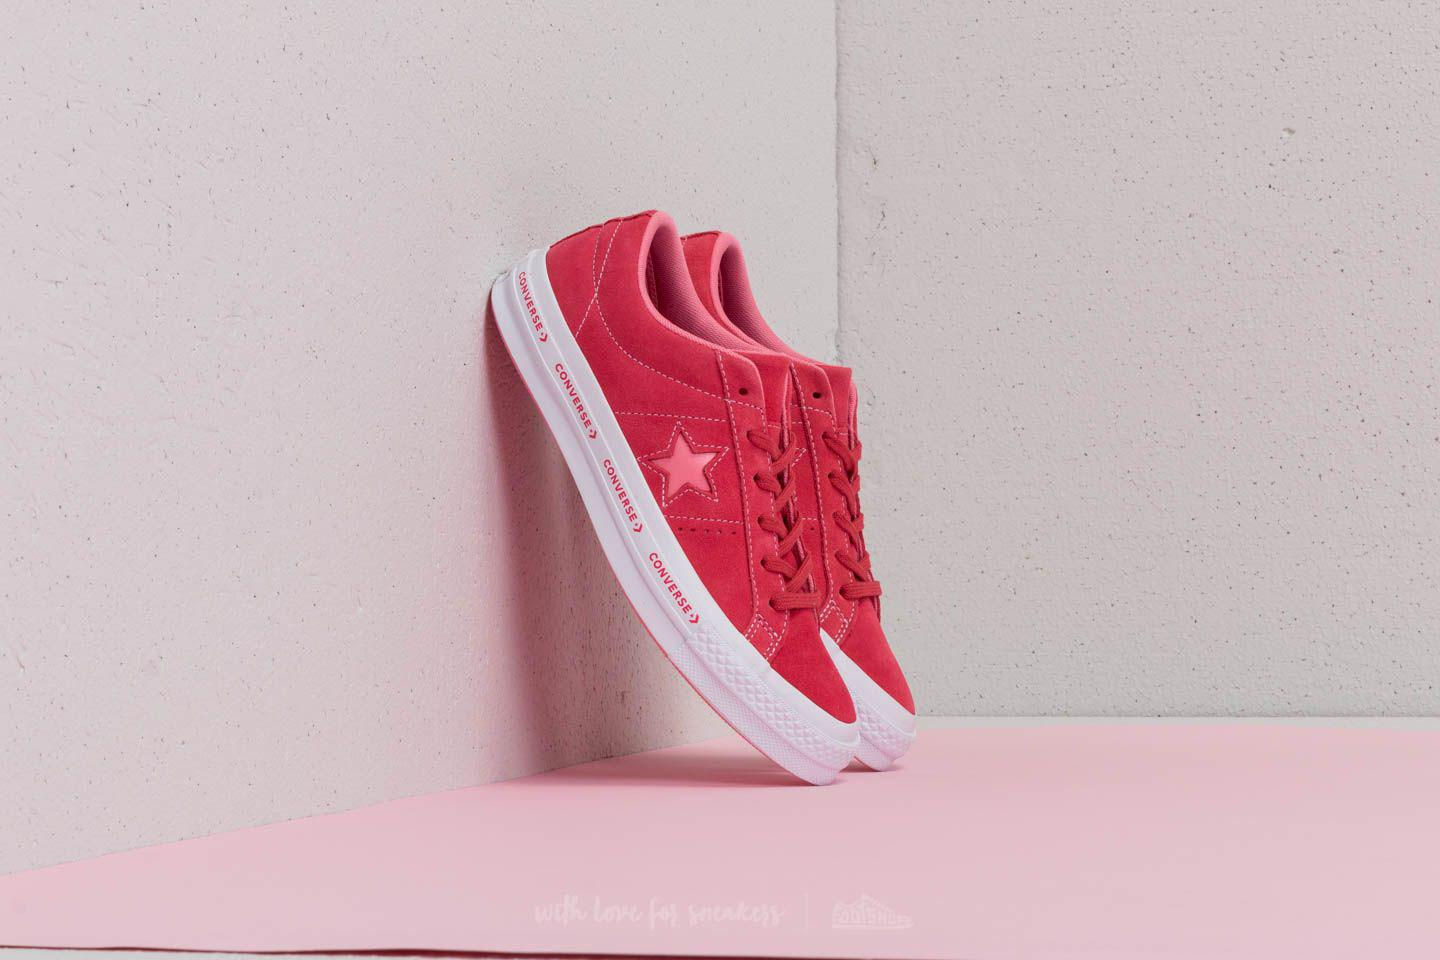 5e5e0dac634d Lyst - Converse One Star Ox Paradise Pink  Geranium Pink in Pink for Men